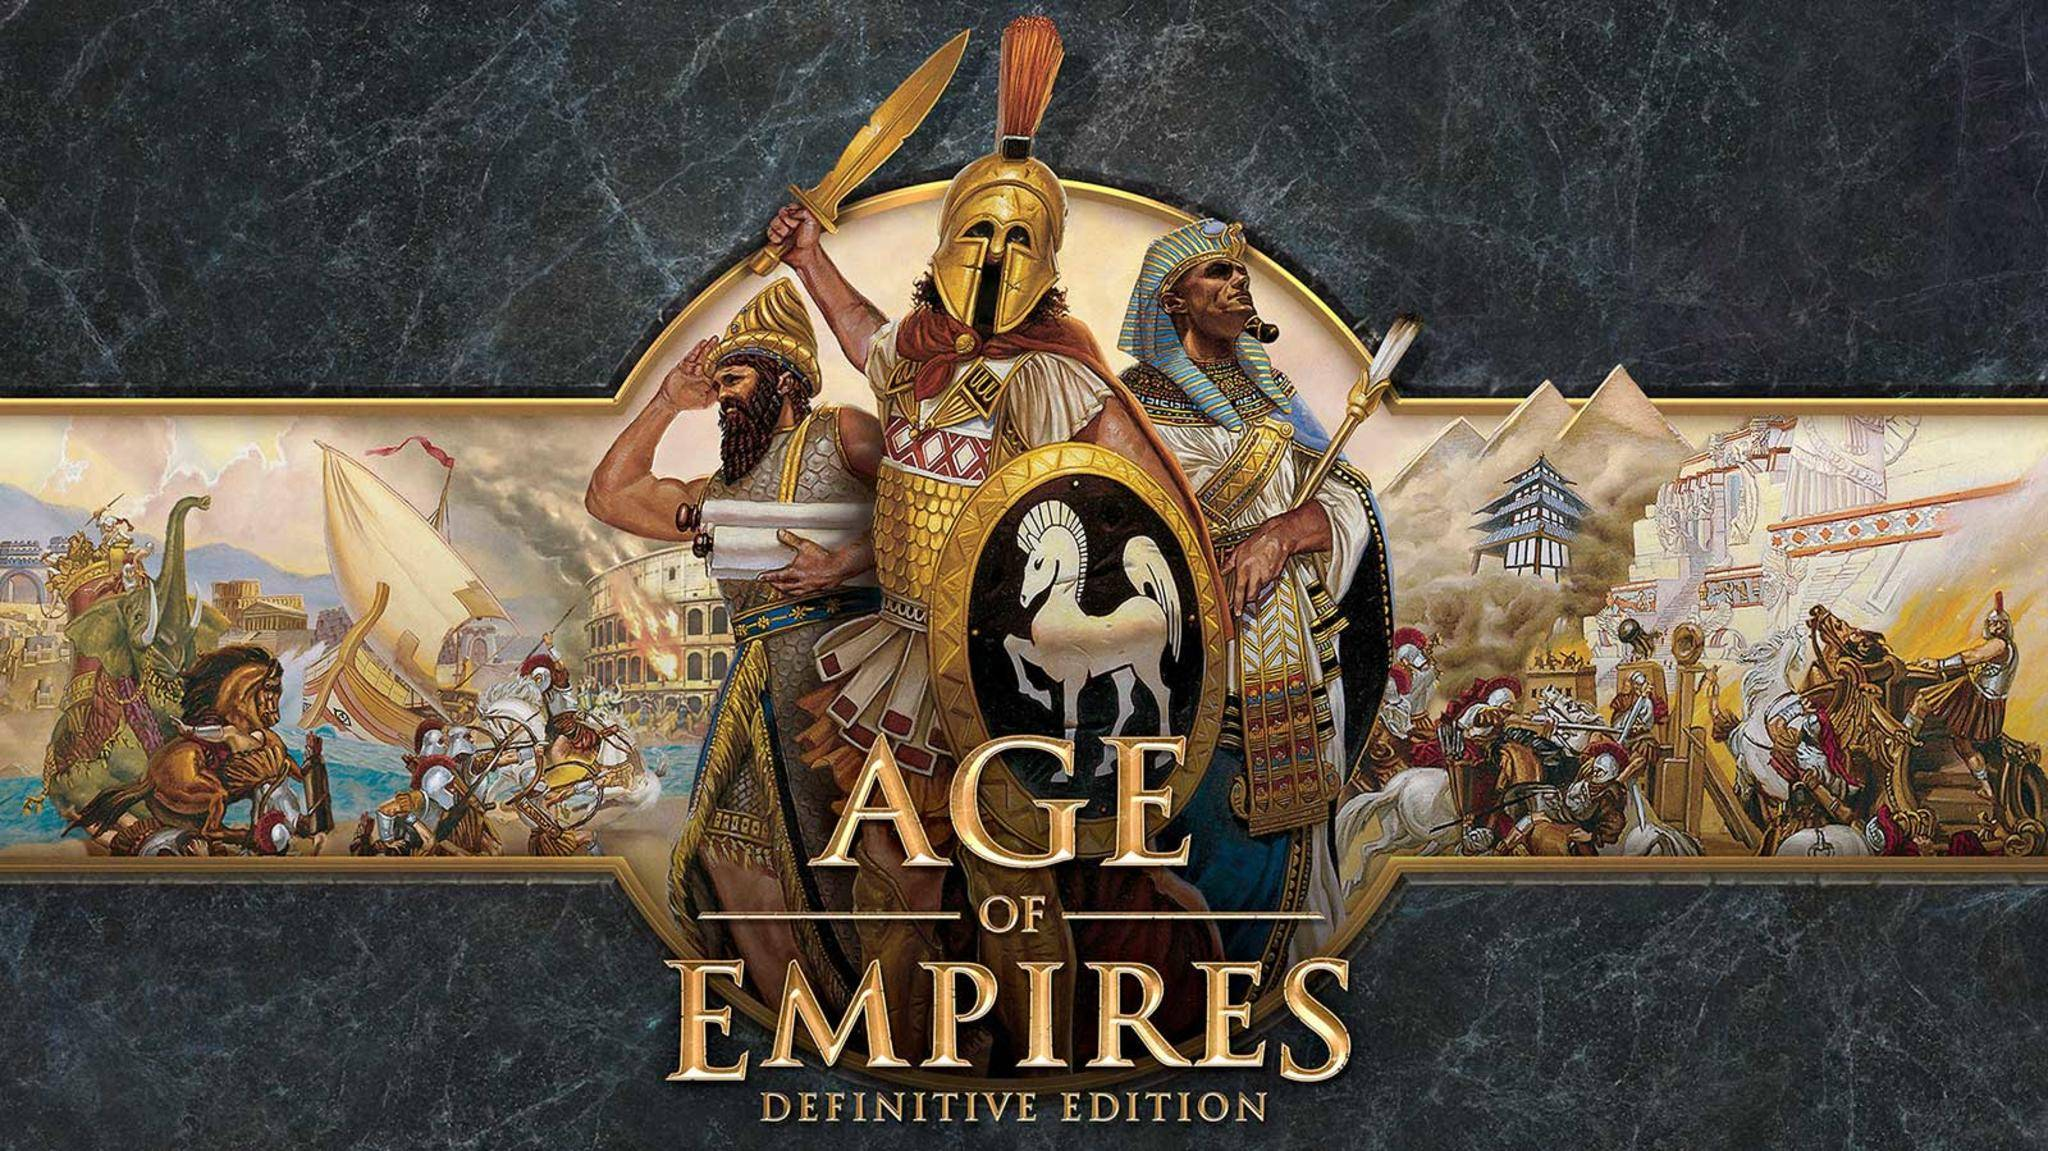 Termin für Age of Empires: Definitive Edition